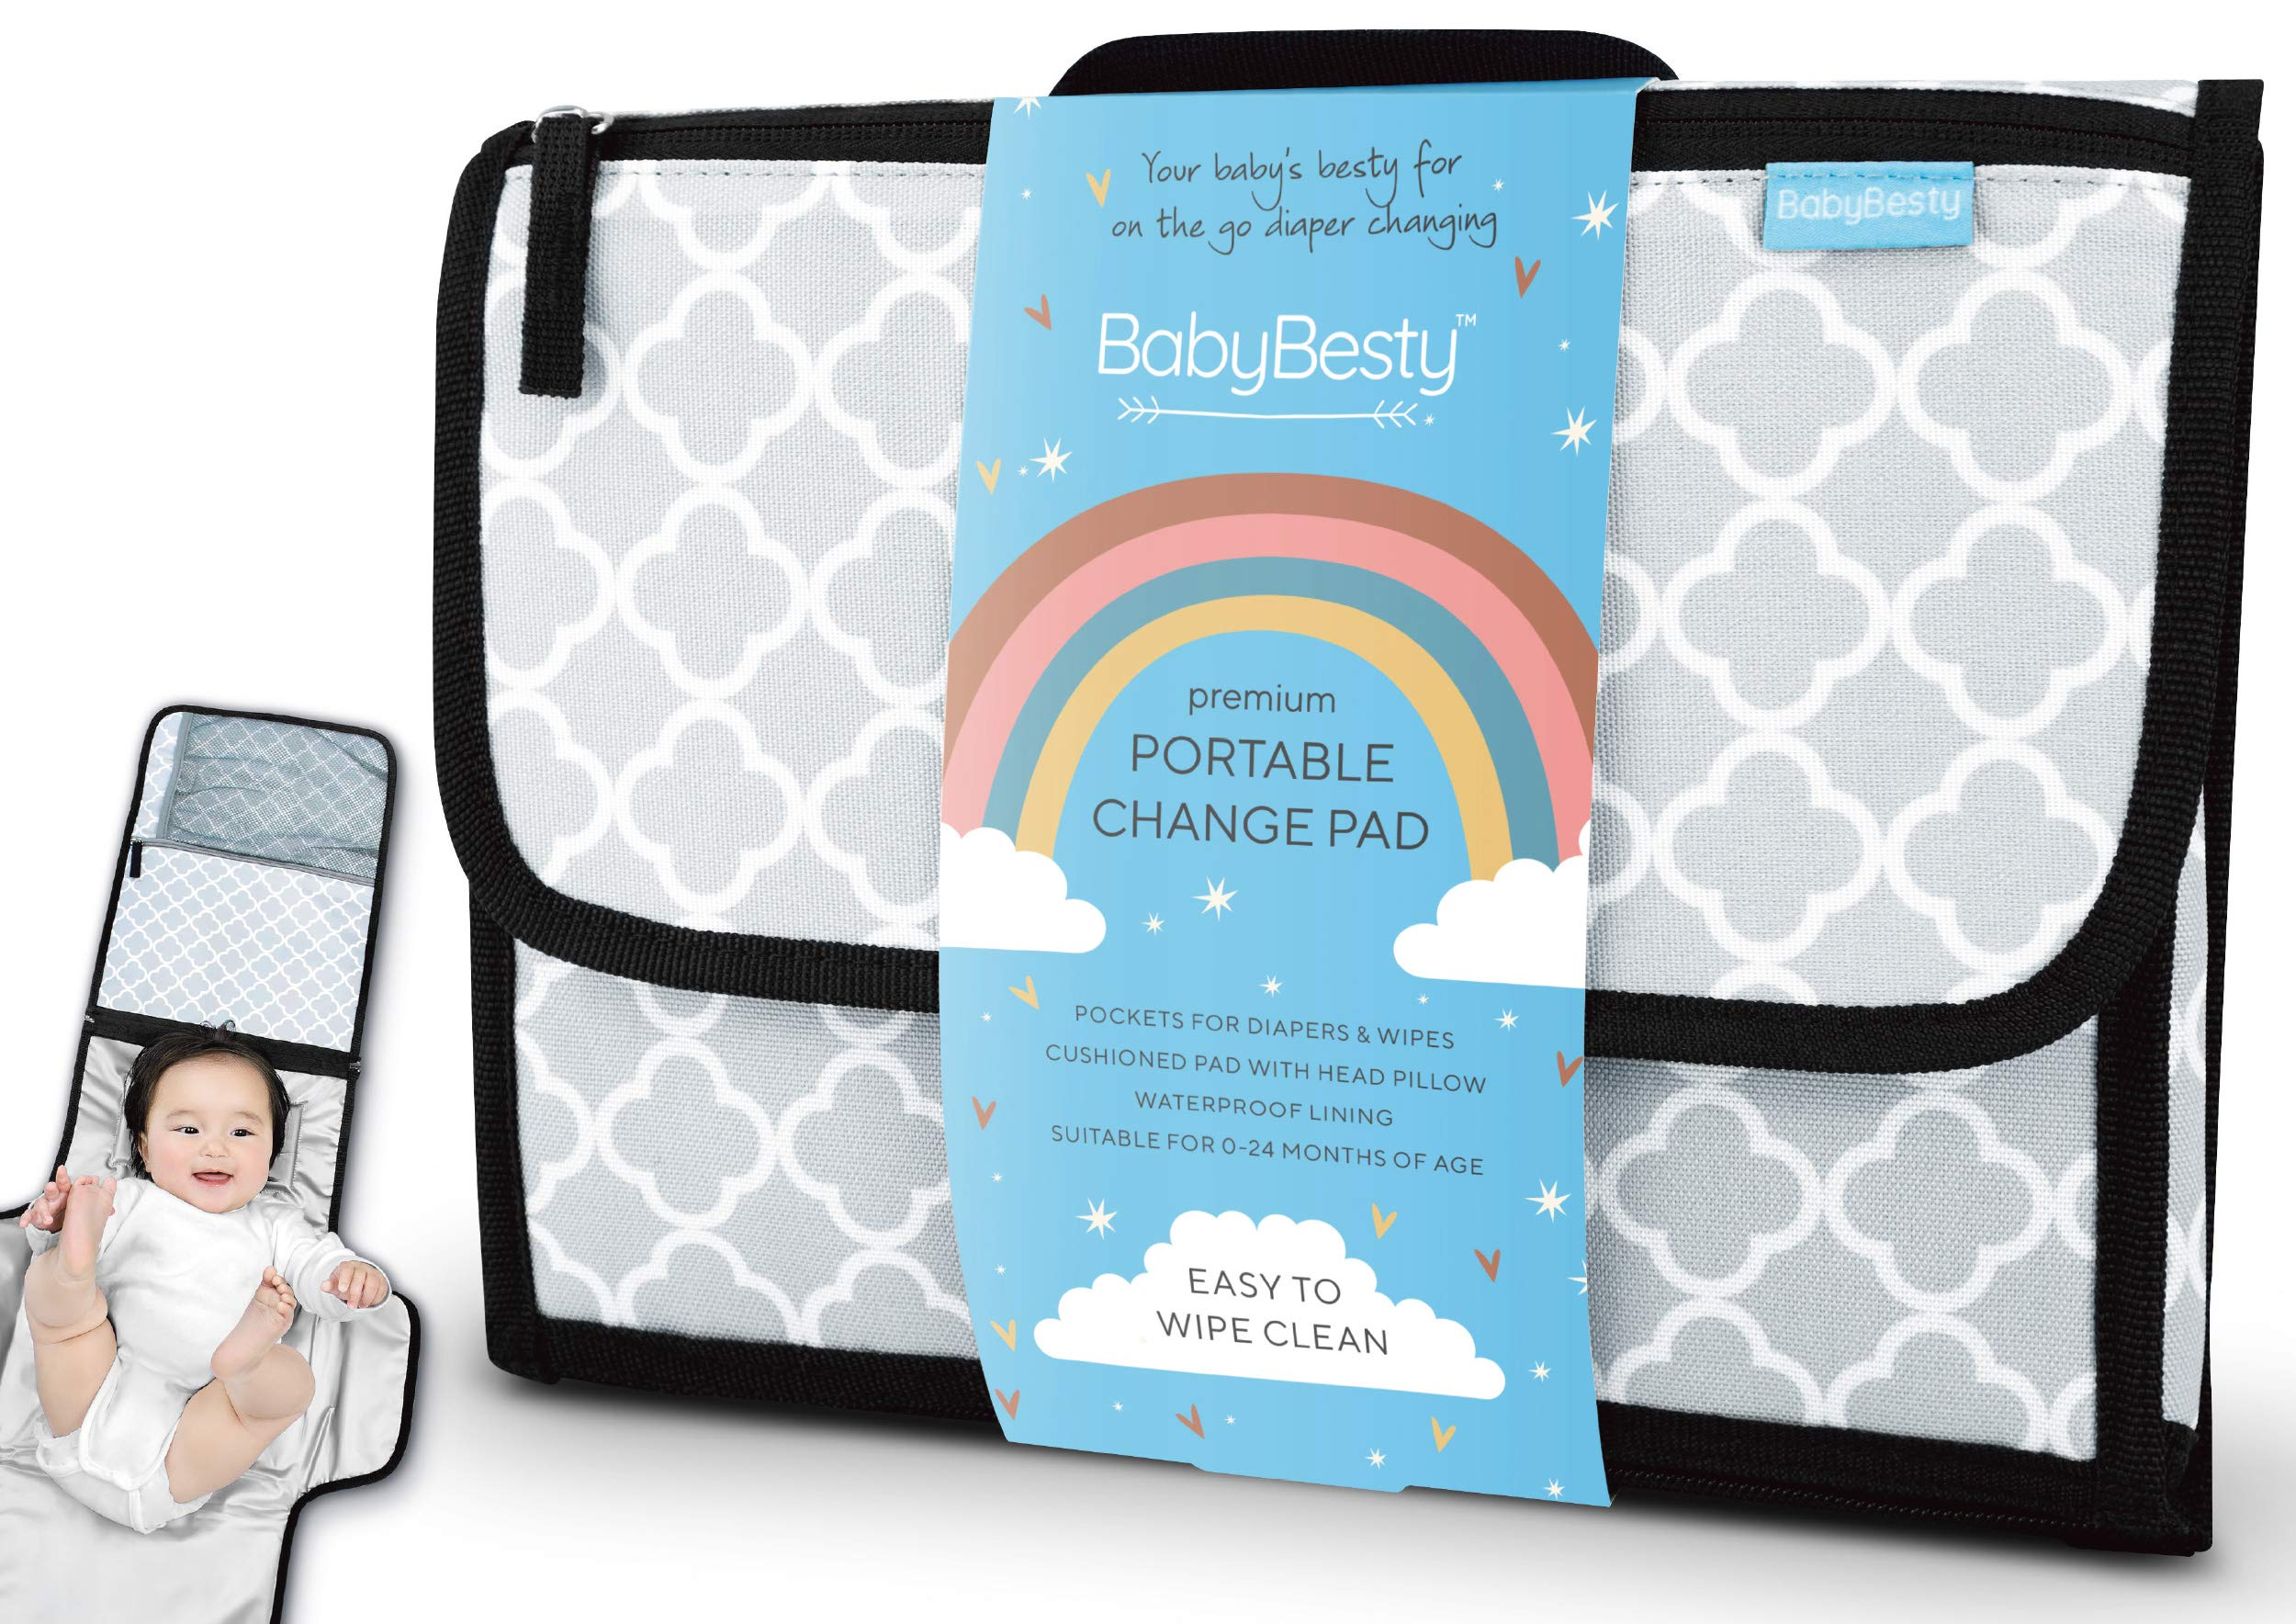 BabyBesty Portable Diaper Changing Pad, 0-24 Months, Gender Neutral Travel Portable Changing Mat, Pockets for Diapers, Wipes, Baby Change Pad & Diaper Clutch, Baby Changing Station, New Mom Gifts by BabyBesty